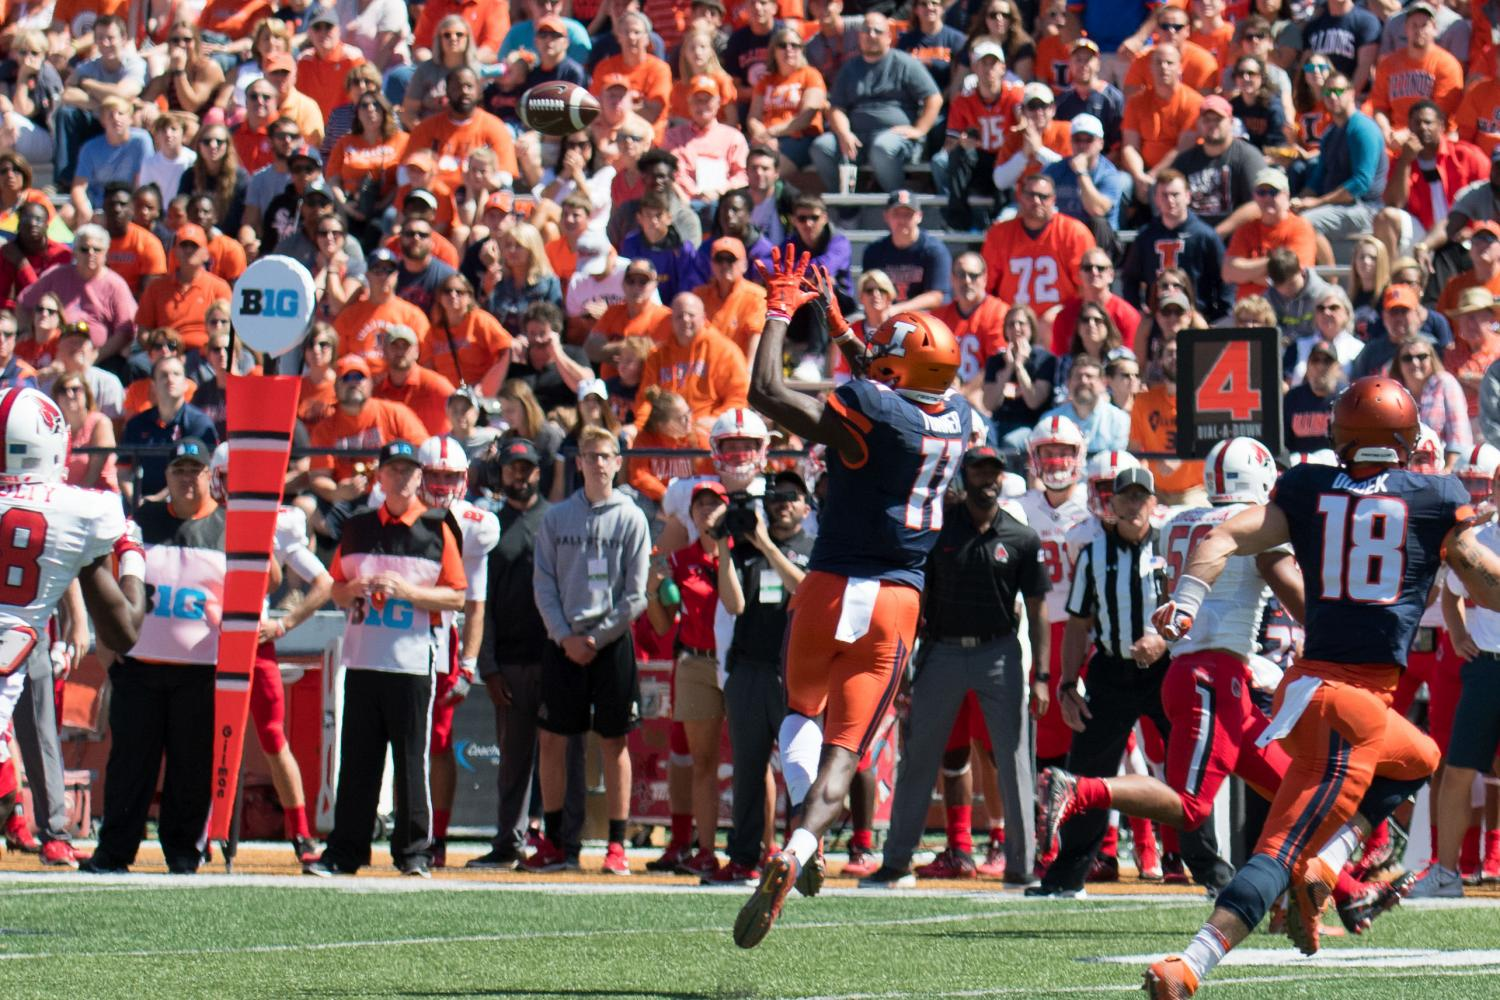 Illinois+wide+receiver+Malik+Turner+catches+a+pass+for+a+successful+fourth+down+conversion+during+the+game+against+Ball+State+on+Saturday%2C+September+2%2C+at+Memorial+Stadium.